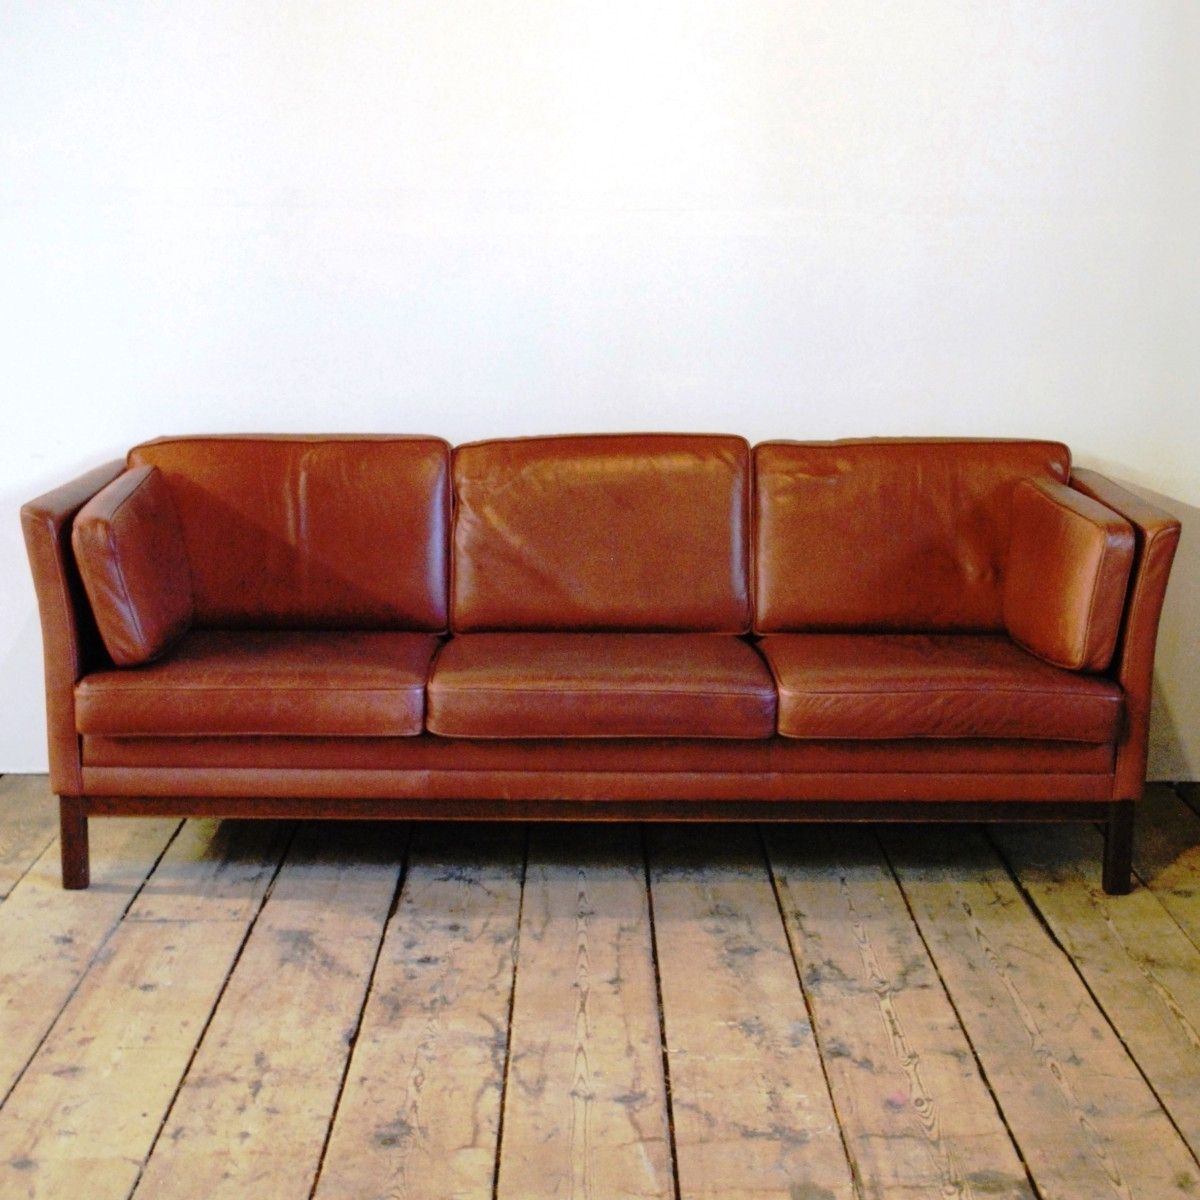 Full Grain Leather Sofa Inspiration Ideas Top Grain Full Aniline Intended For Famous Aniline Leather Sofas (View 13 of 20)